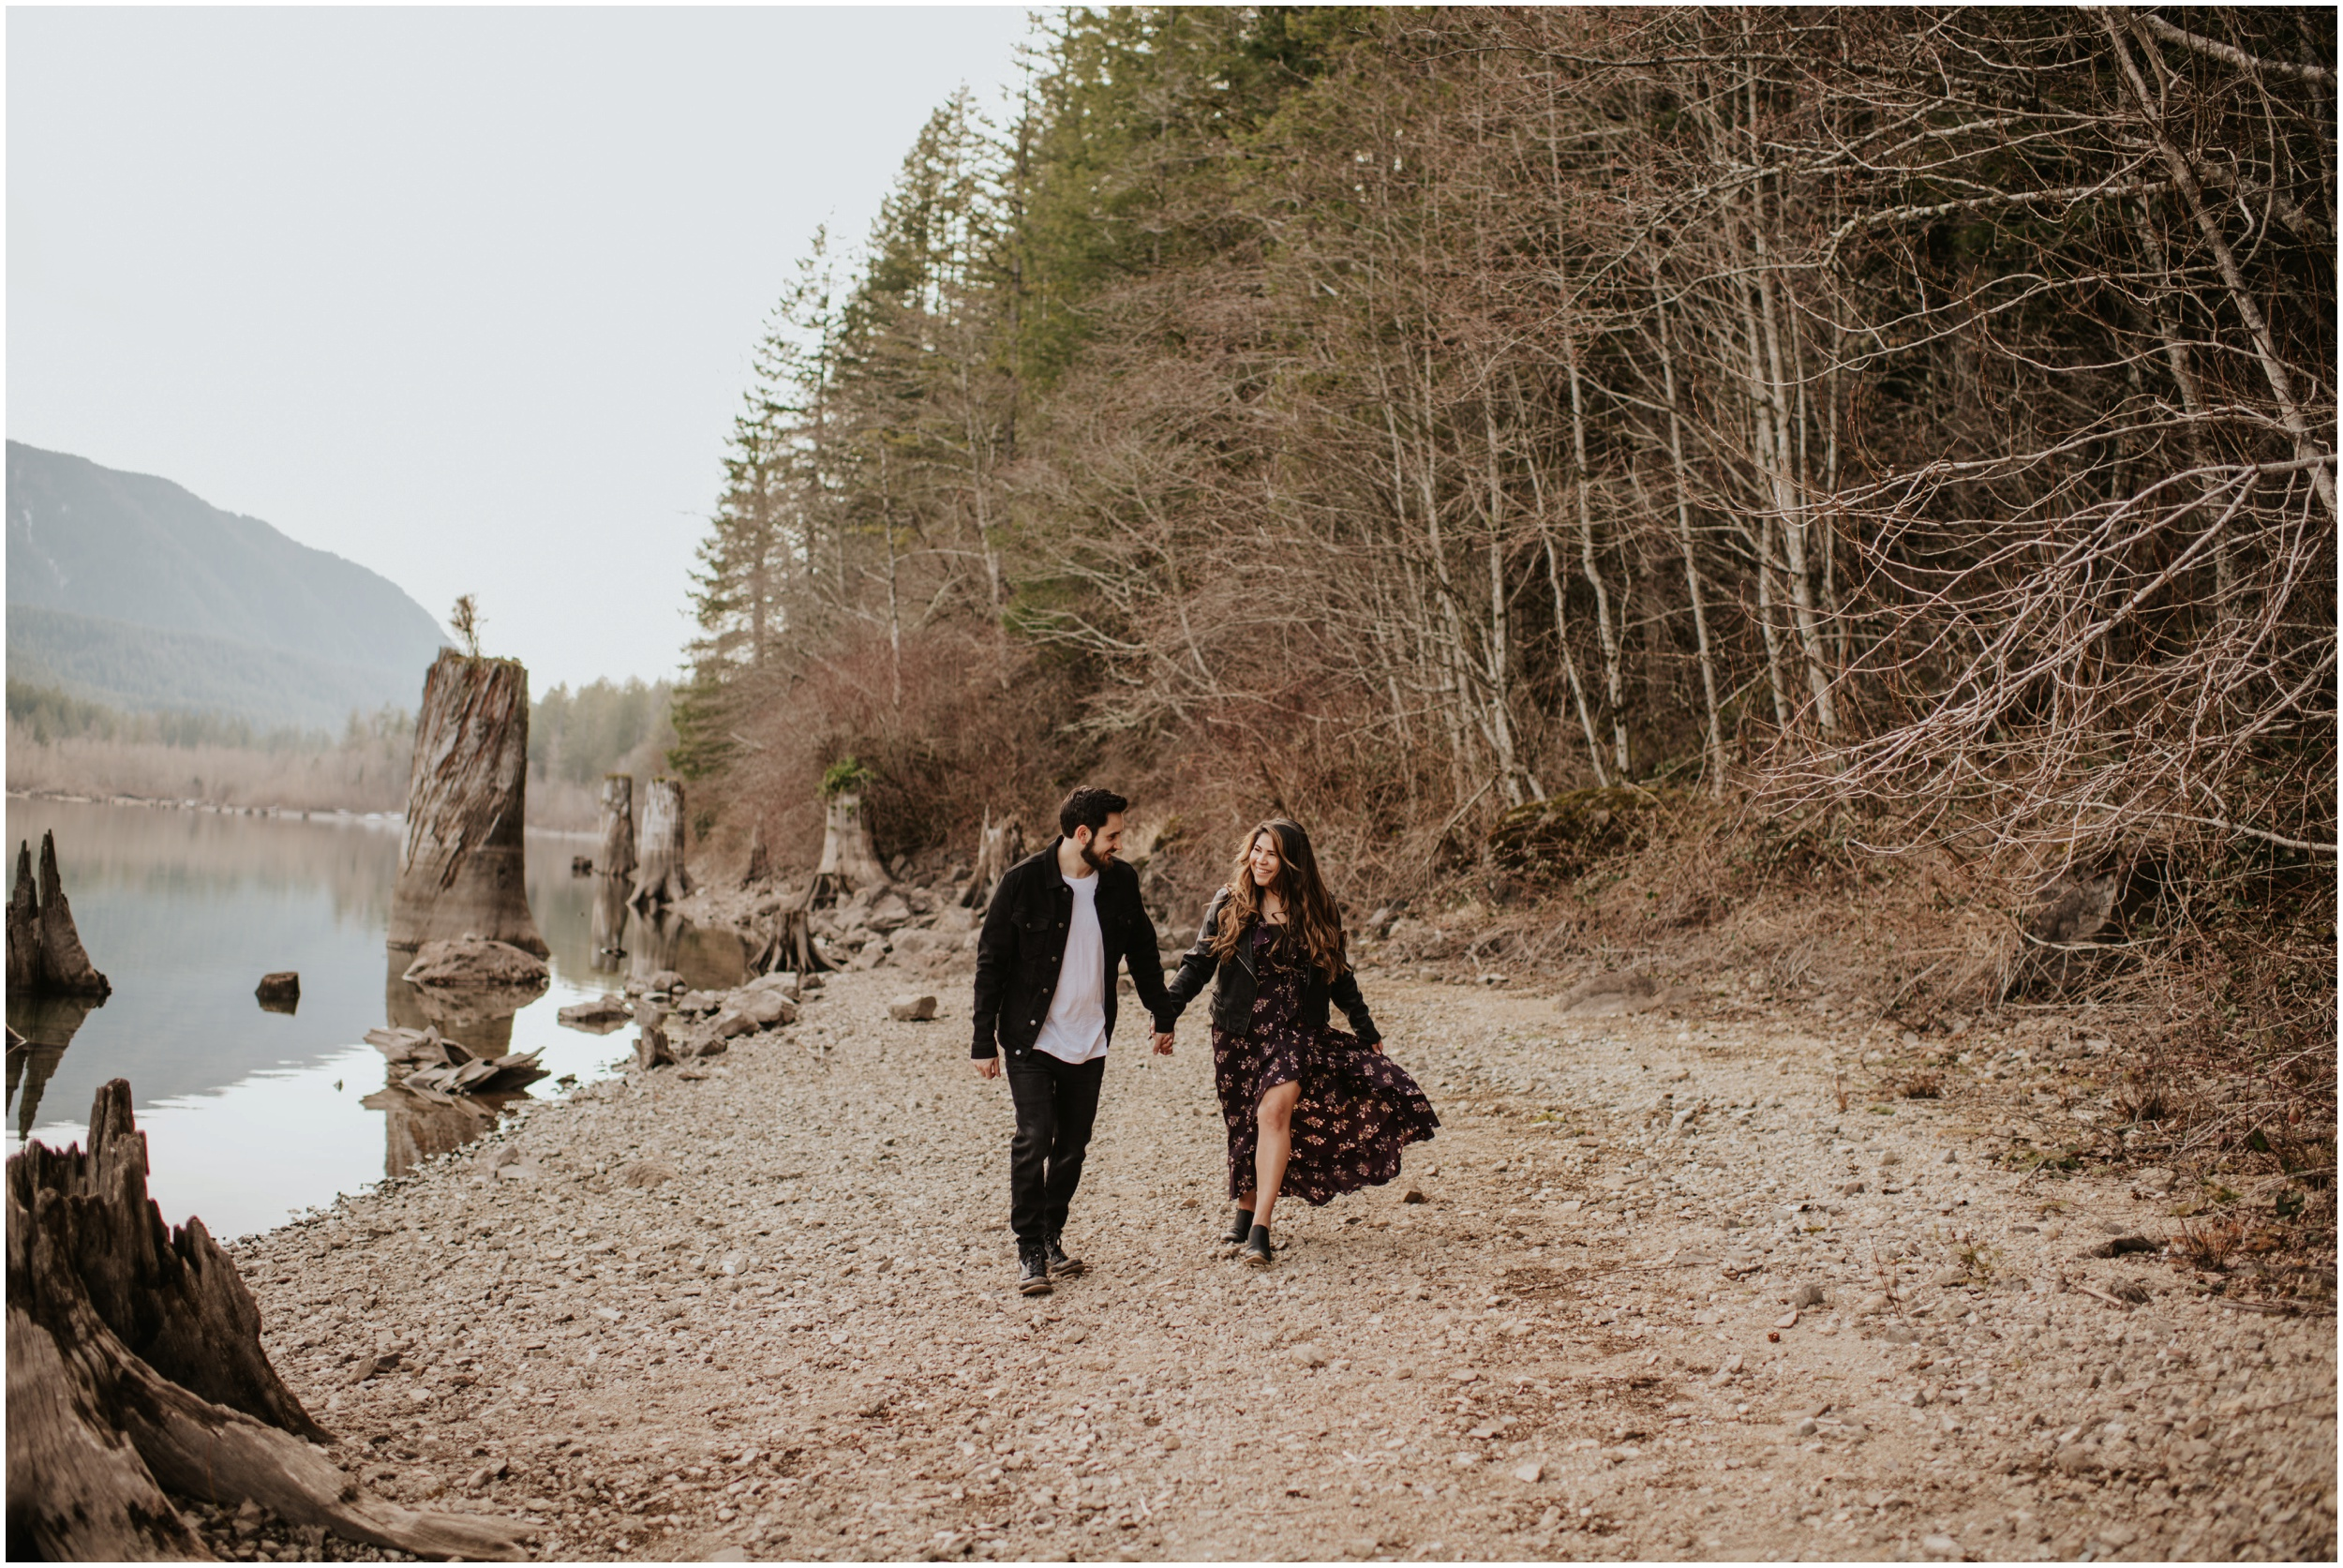 Styled couple session at Rattlesnake Lake, WA | Seattle Wedding Photographer www.riversandroadsphotography.com